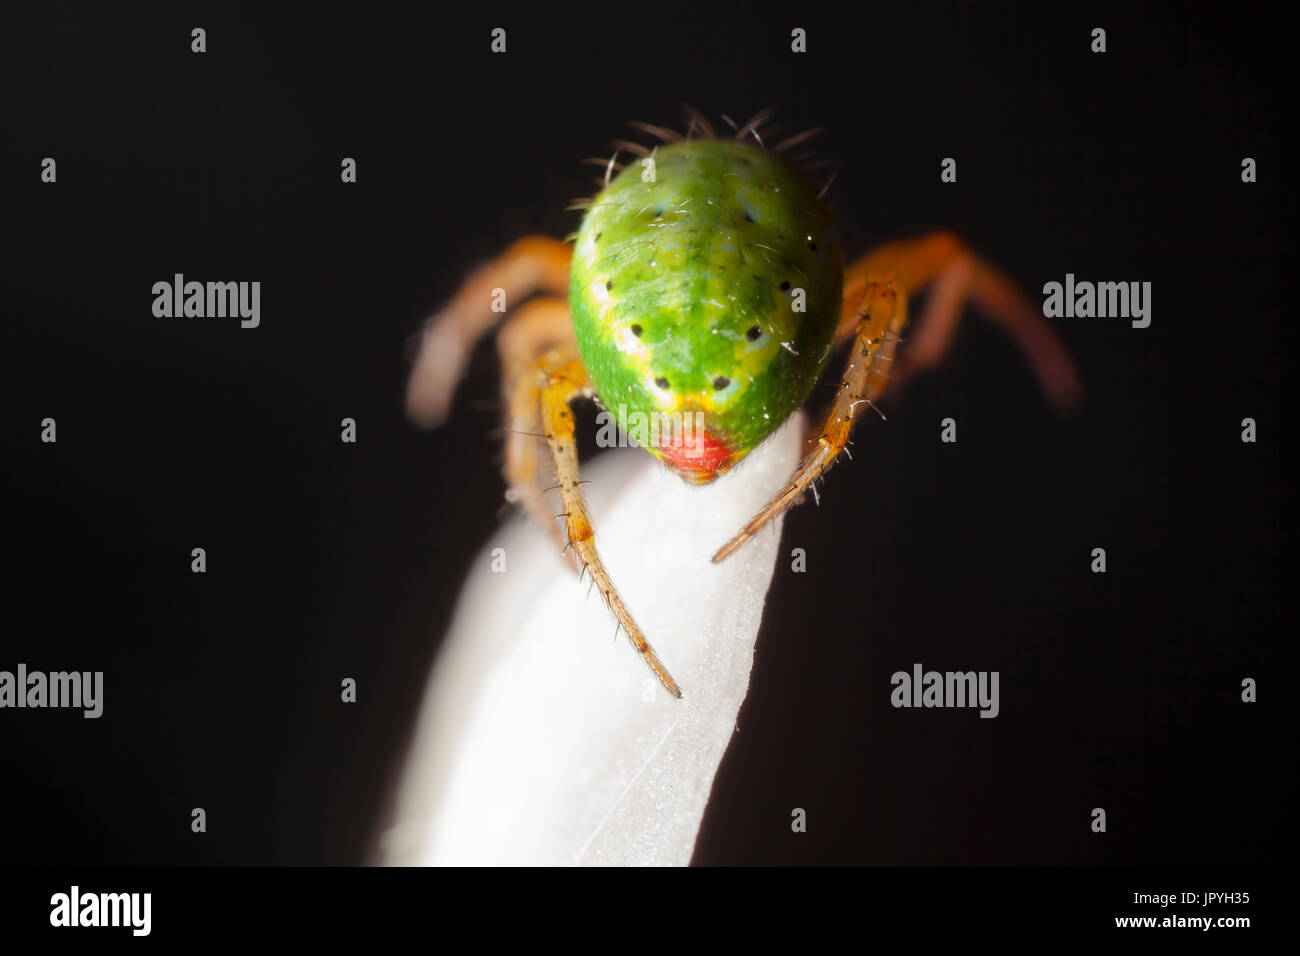 Cucumber Green Spider on white petal - France - Stock Image